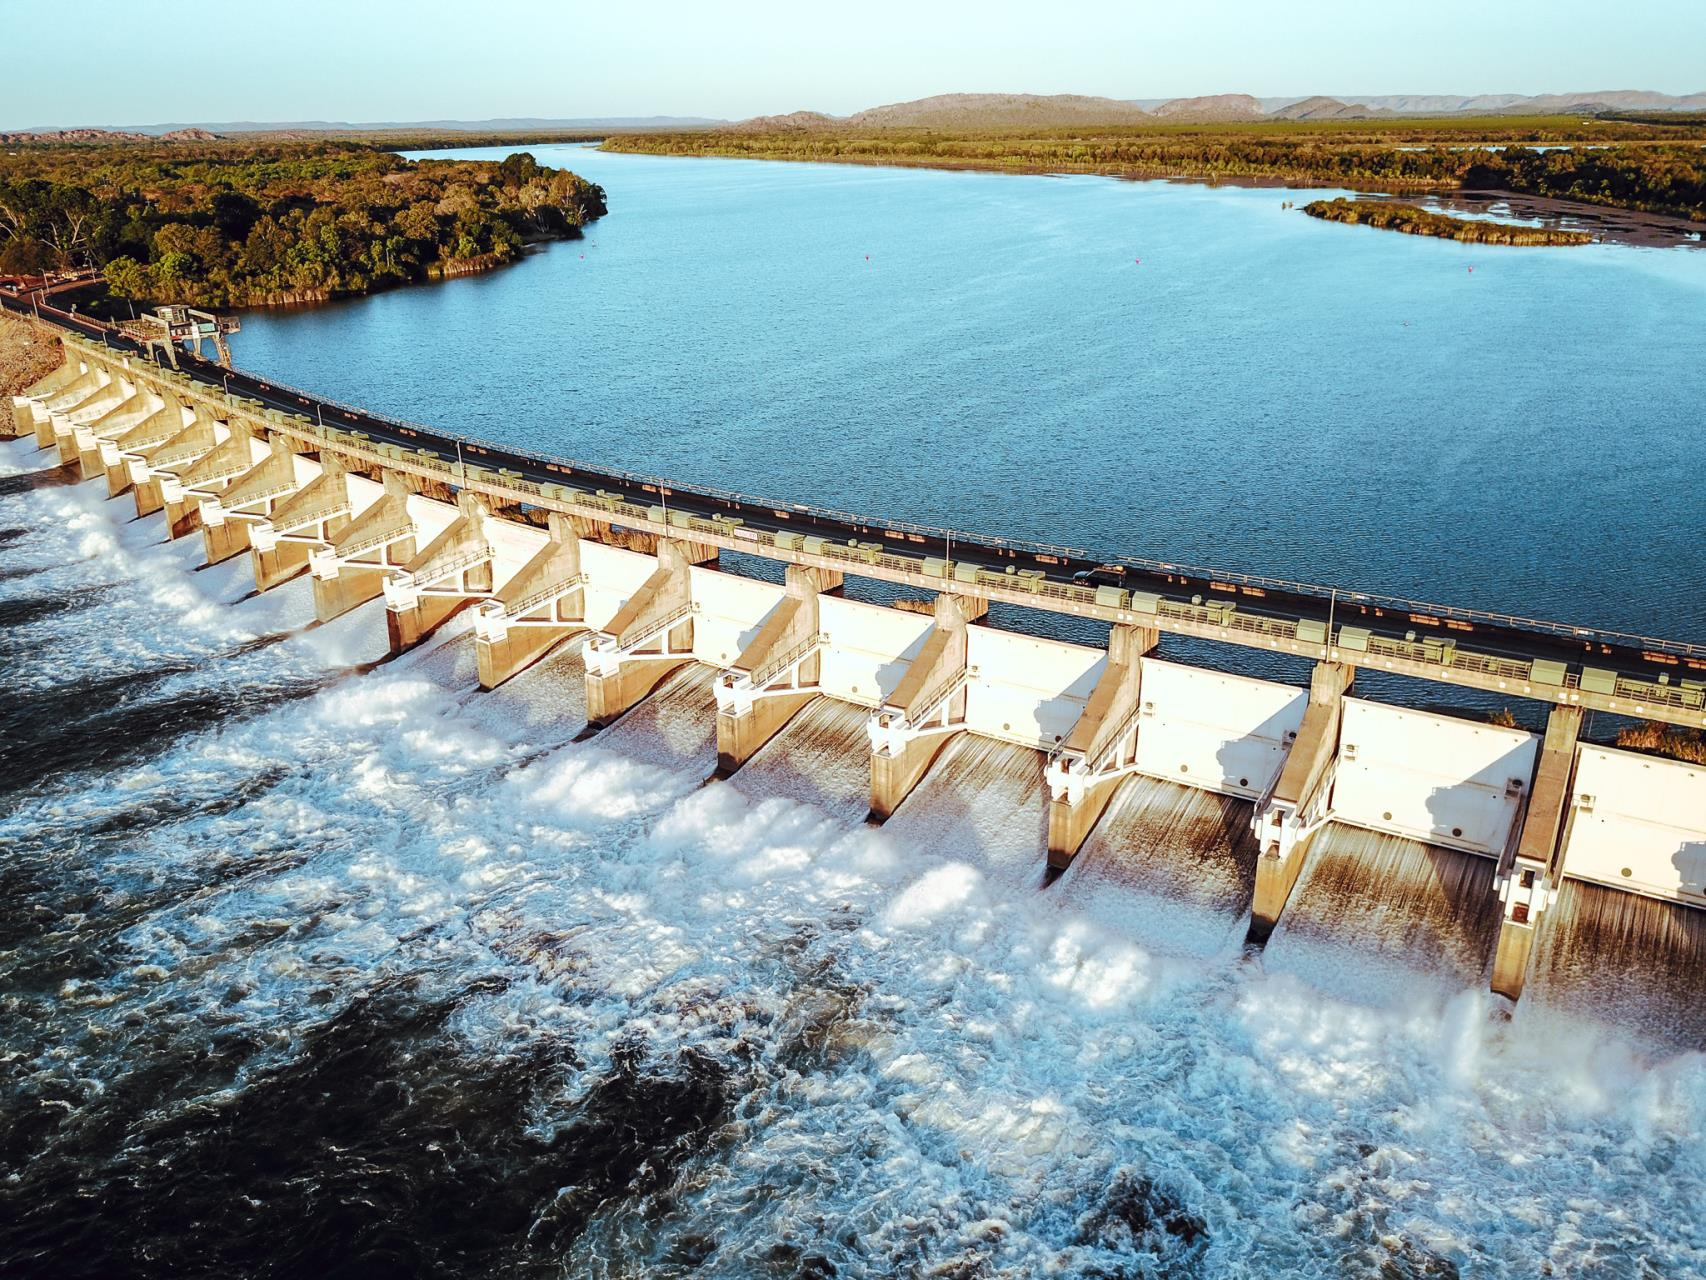 Water Corporation to temporarily lower water levels in Lake Kununurra